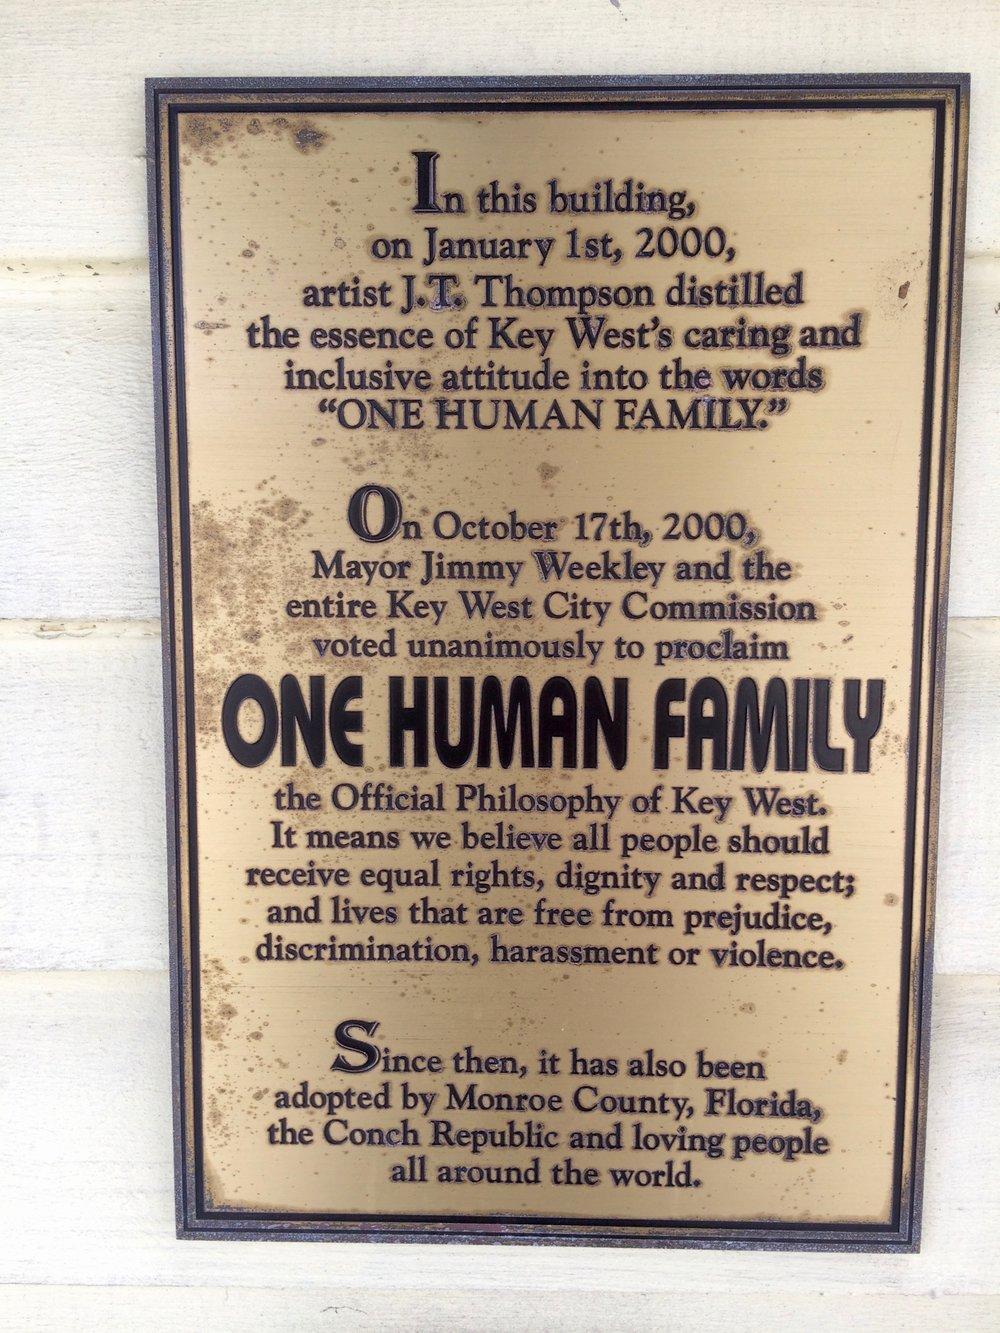 A plaque honoring the One Human Family movement